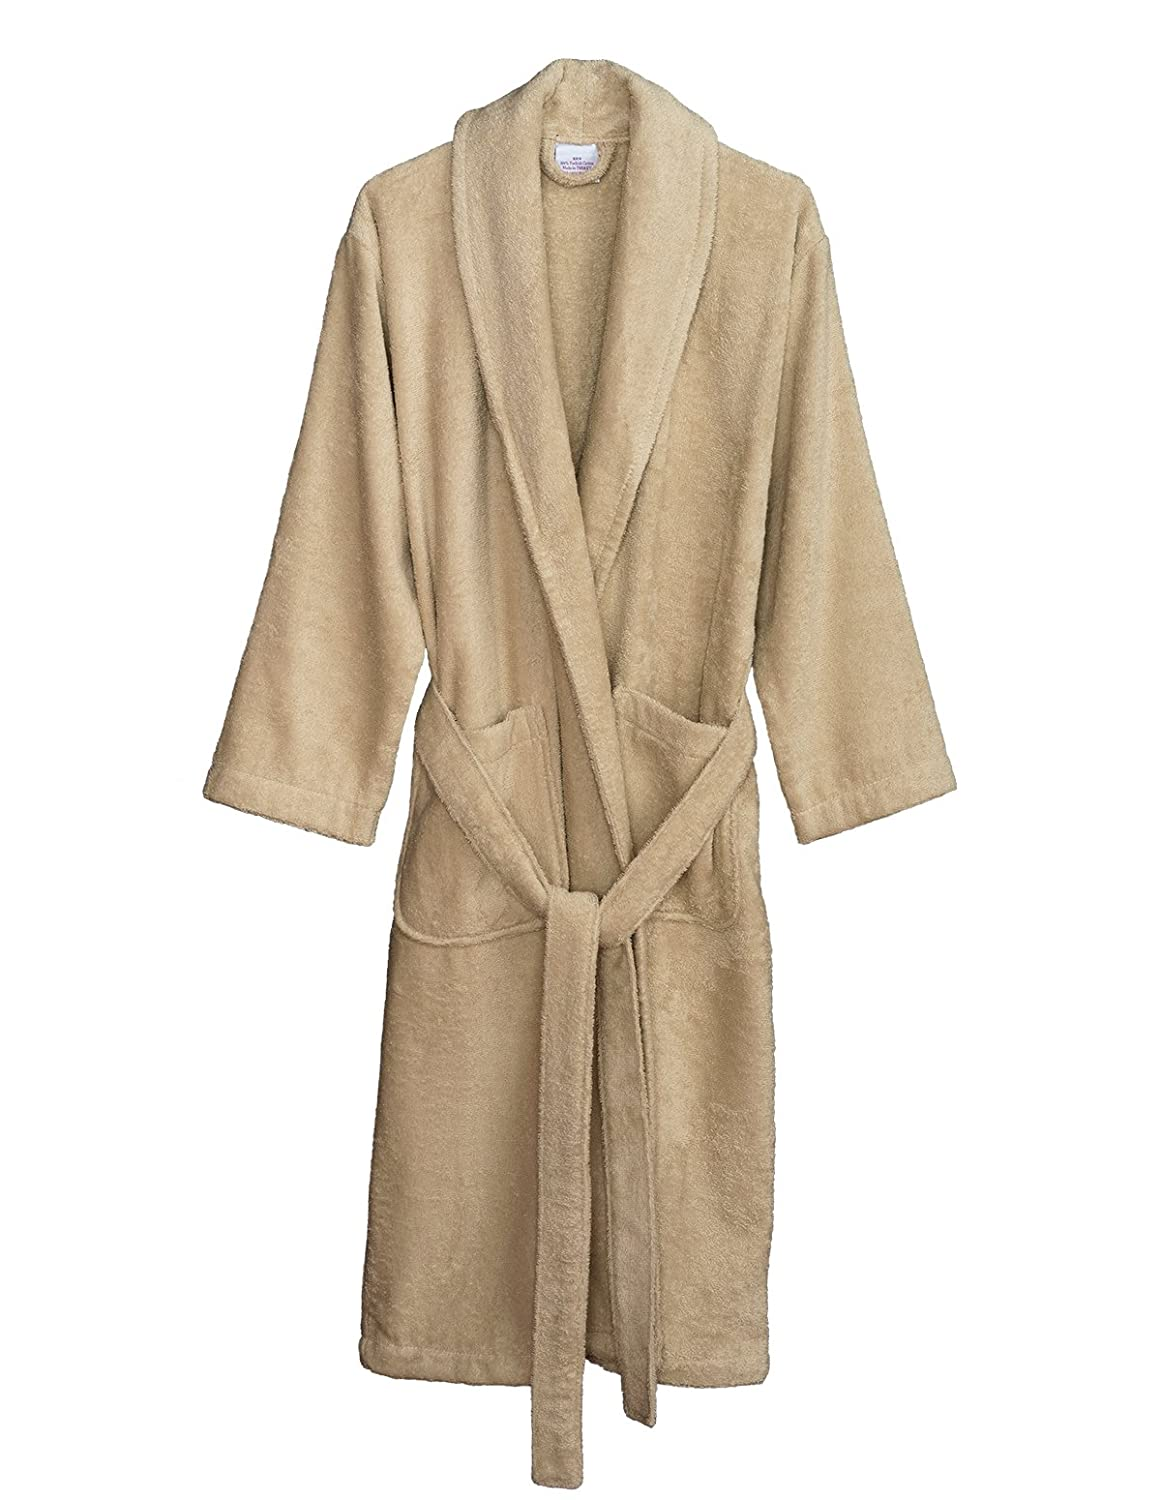 Creme Brulee TowelSelections Turkish Cotton Bathrobe Terry Shawl Robe Made in Turkey